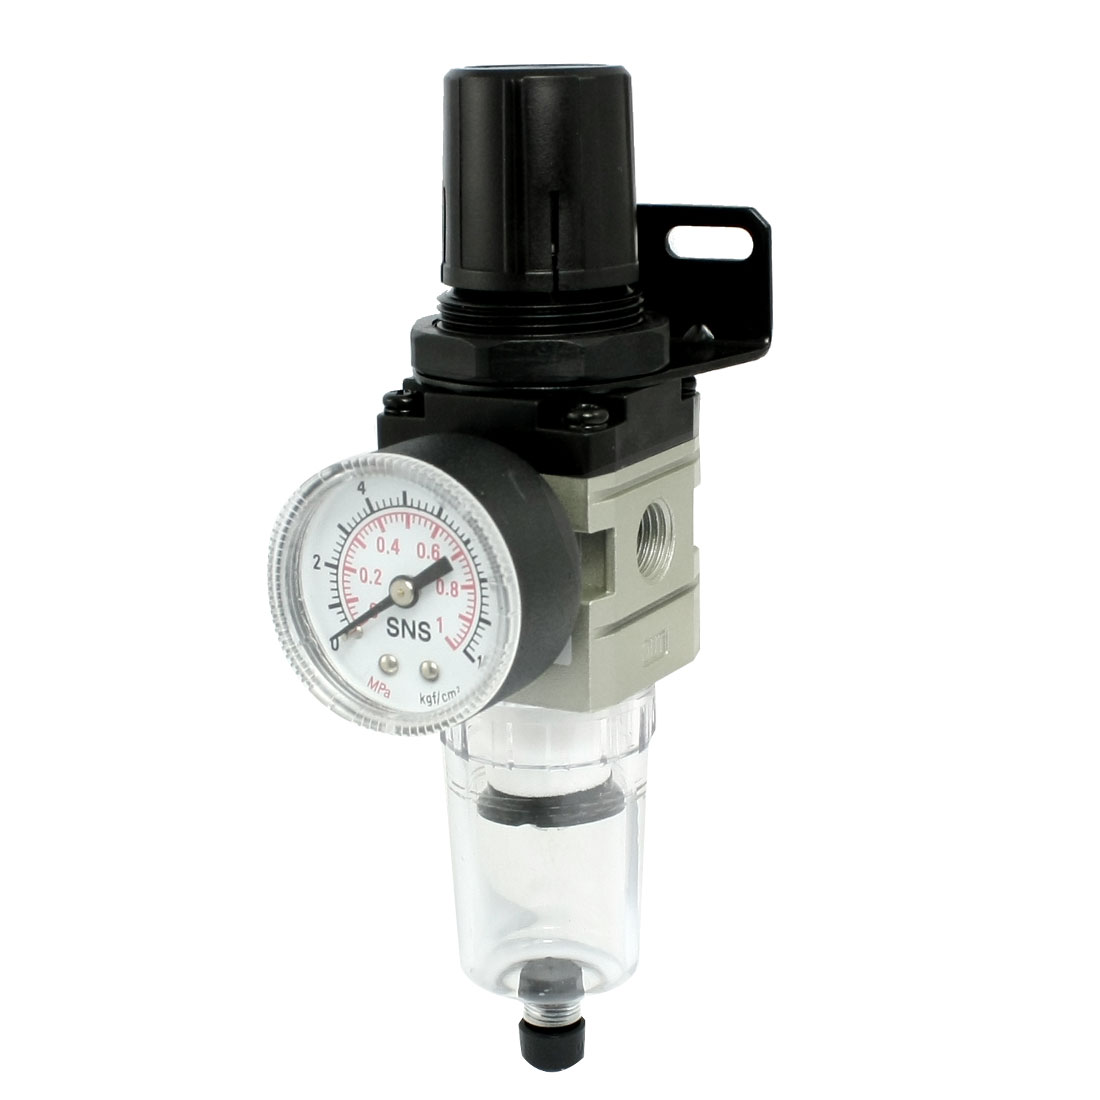 "0-1Mpa G1/4"" Pneumatic Air Source Treatment Filter Regulator"